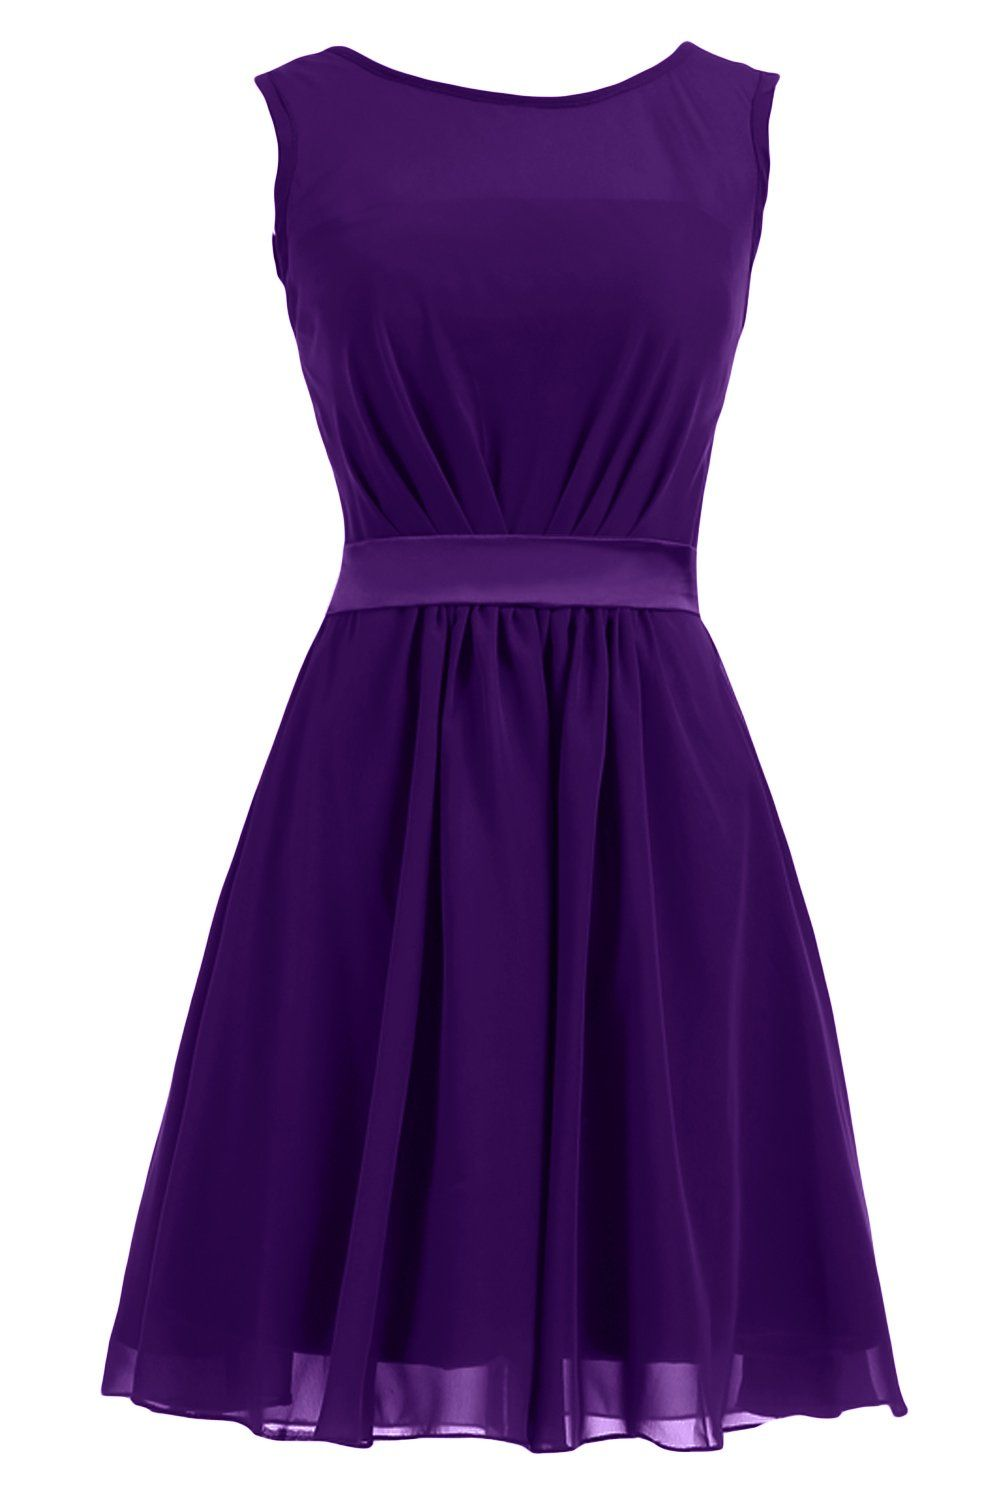 Short purple wedding dresses  Sunvary Summer Short Chiffon Sheath Mother of the Bride Dresses